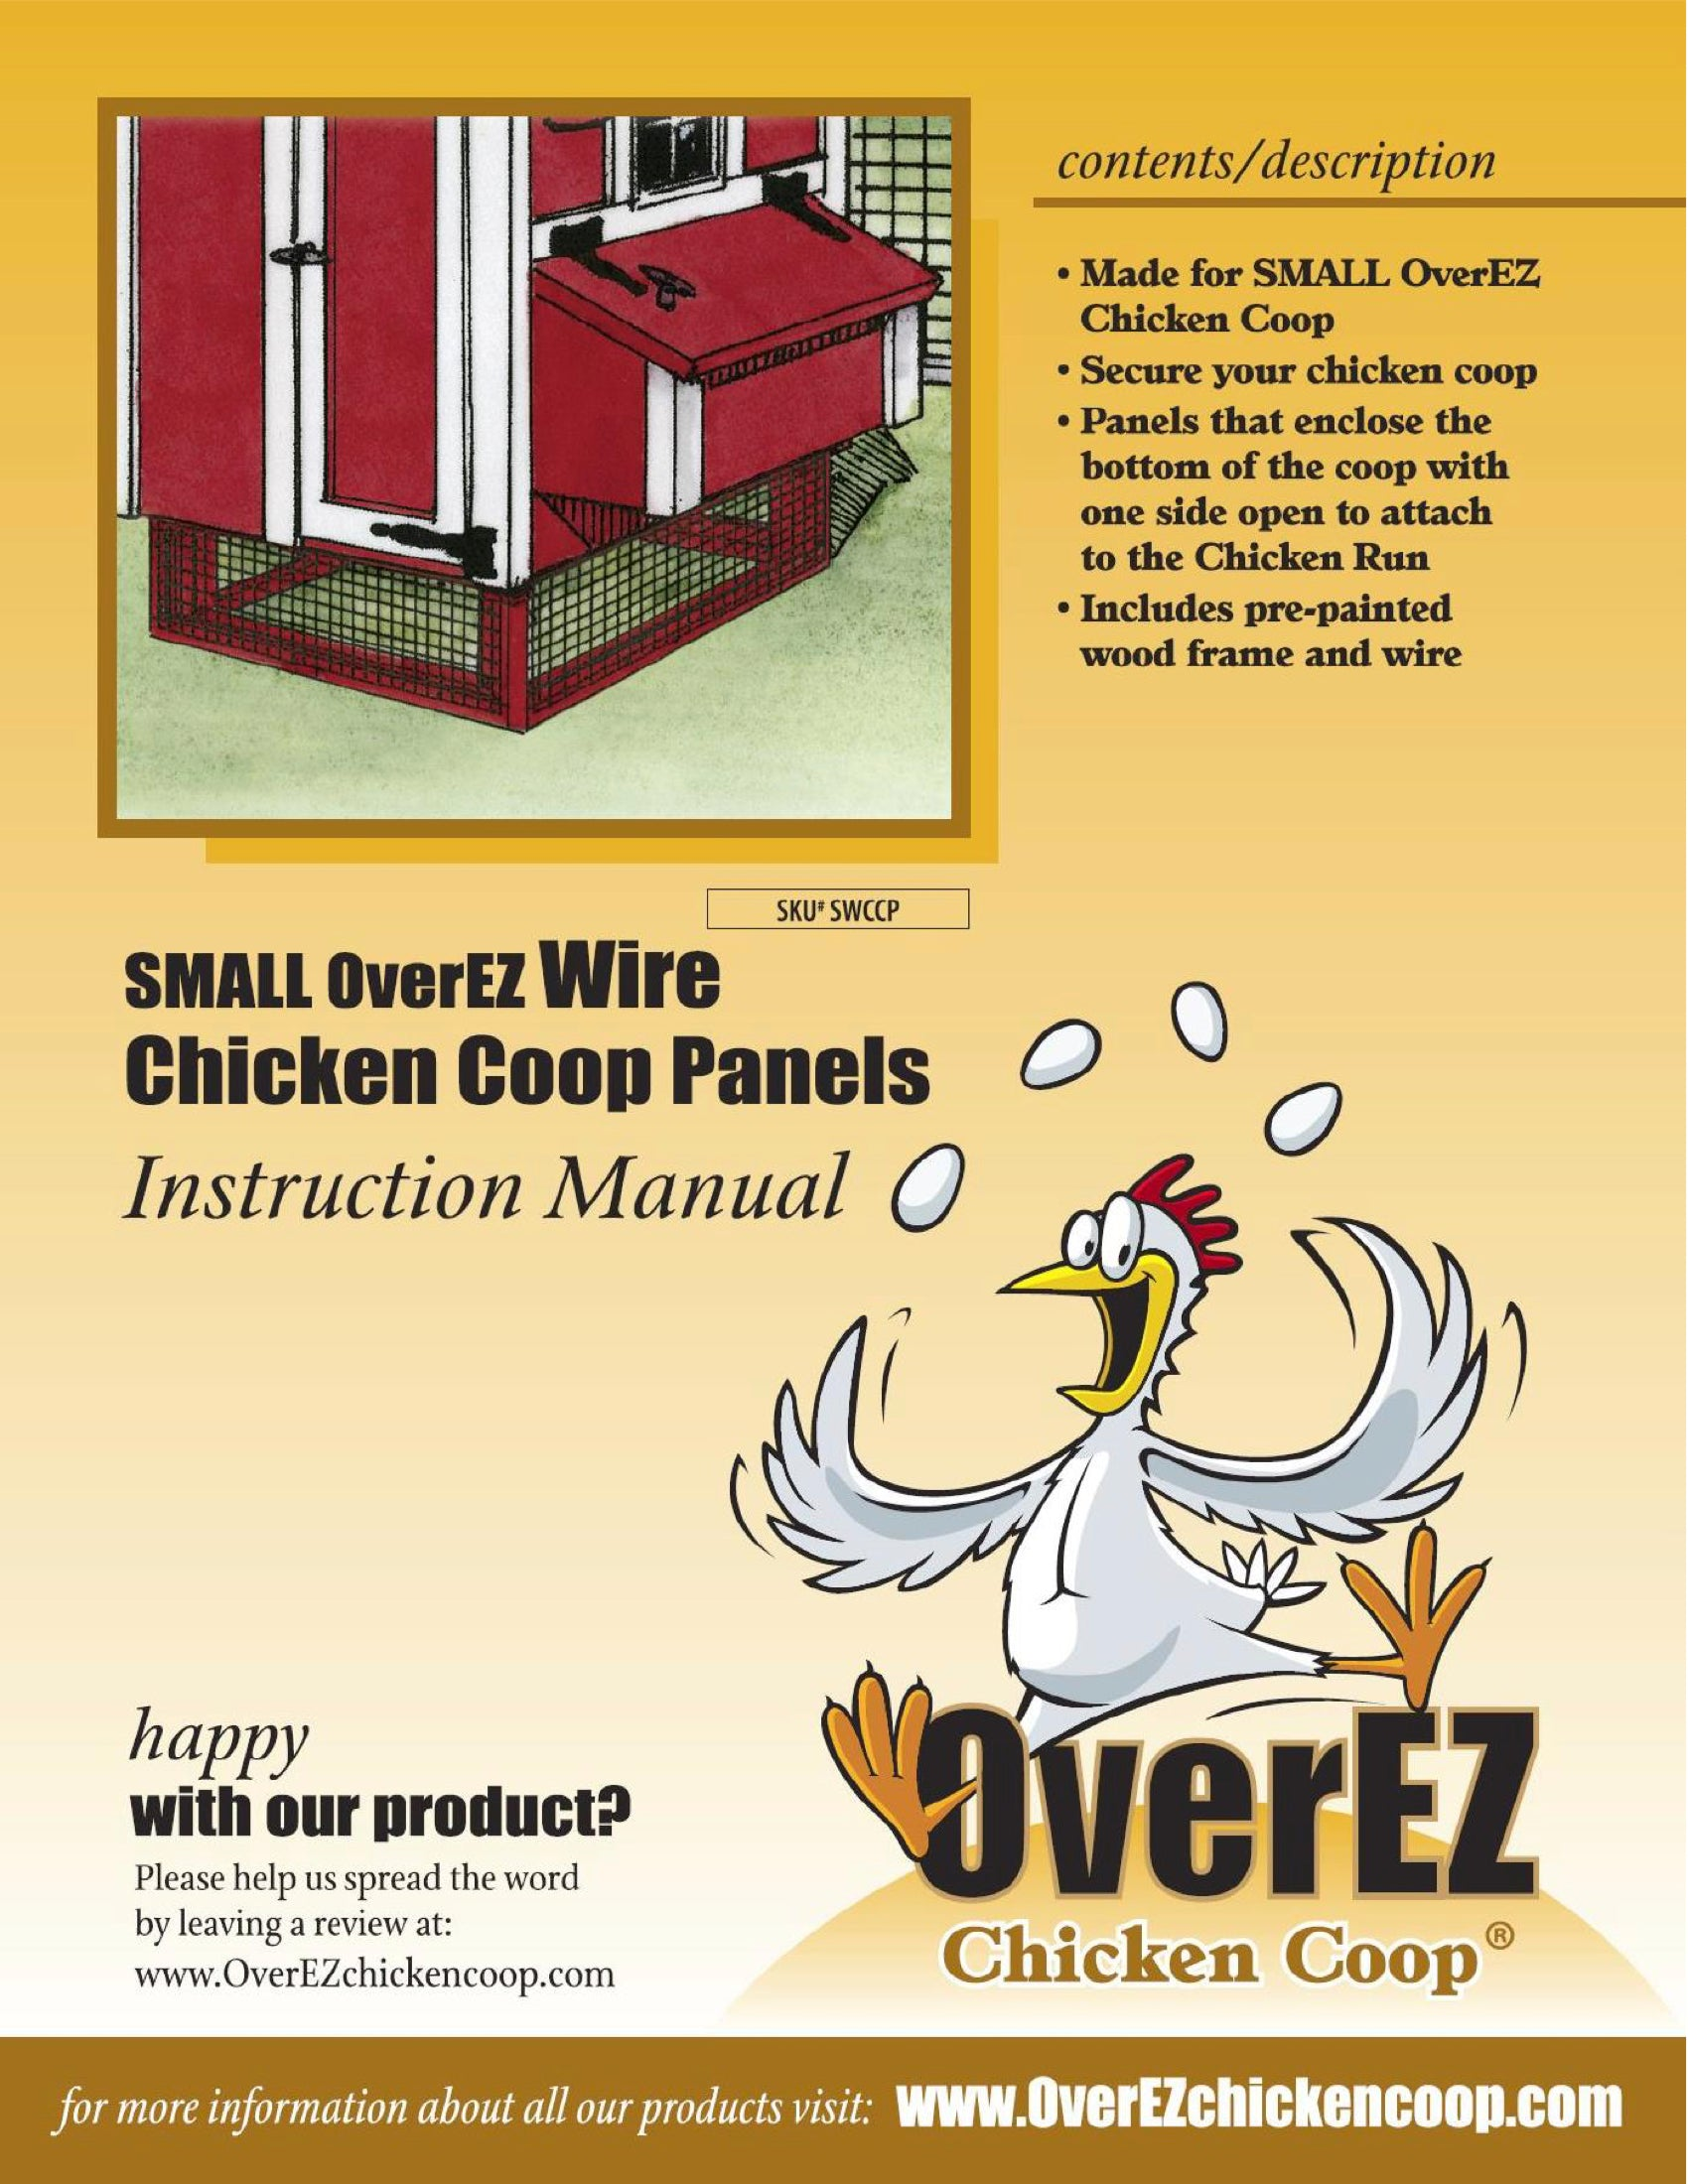 Small OverEZ Wire Chicken Coop Panels Instructions